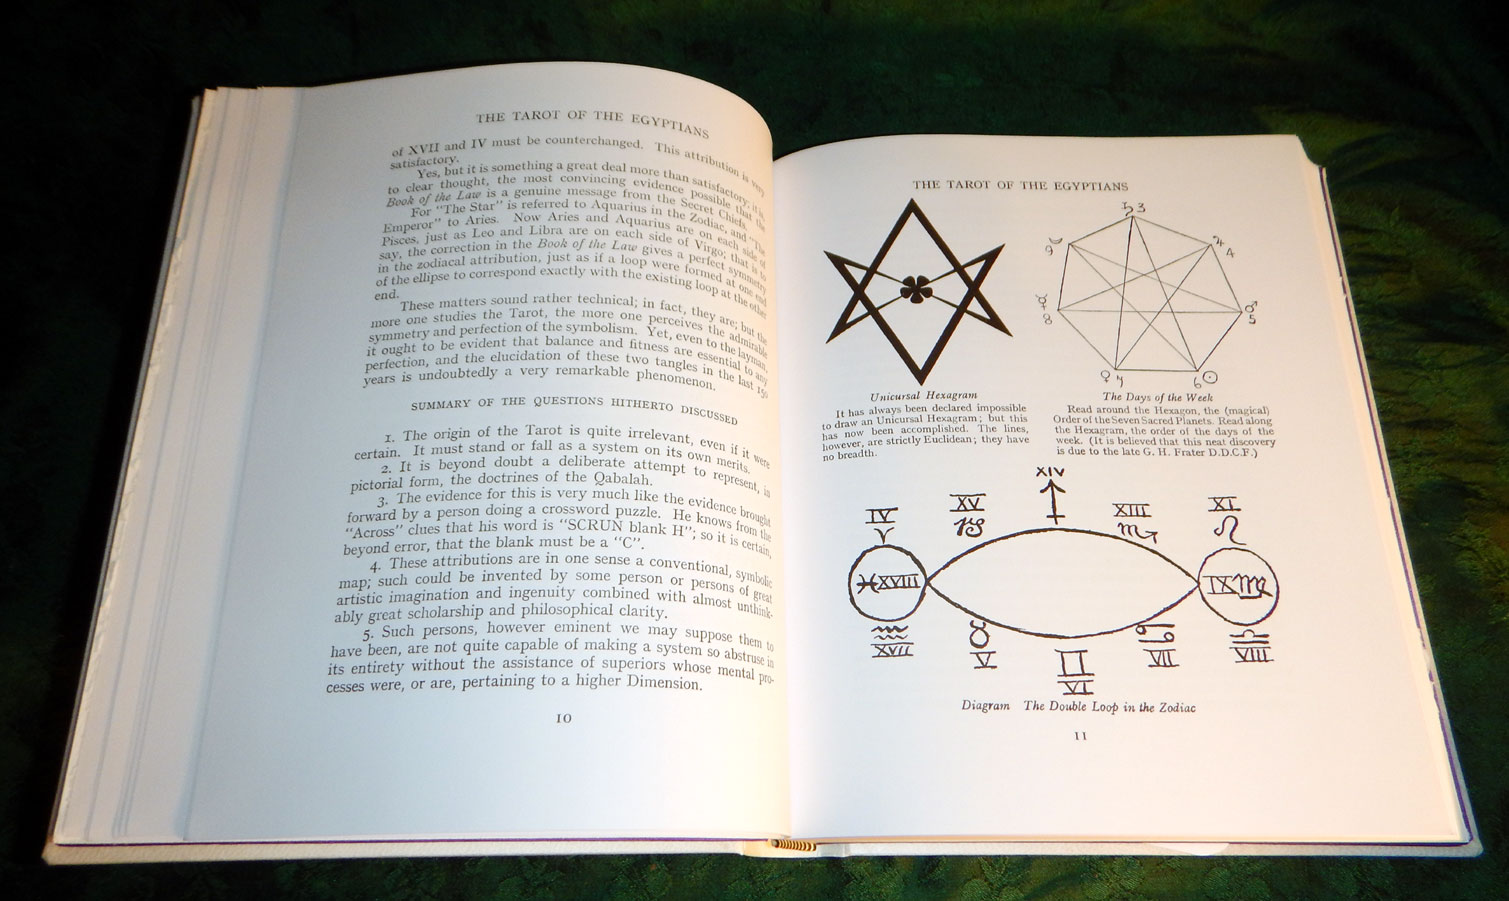 THE BOOK OF THOTH  A Short Essay on the Tarot of the Egyptians, Being The  Equinox Volume III No  V  Special Deluxe Edition by Aleister CROWLEY, THE